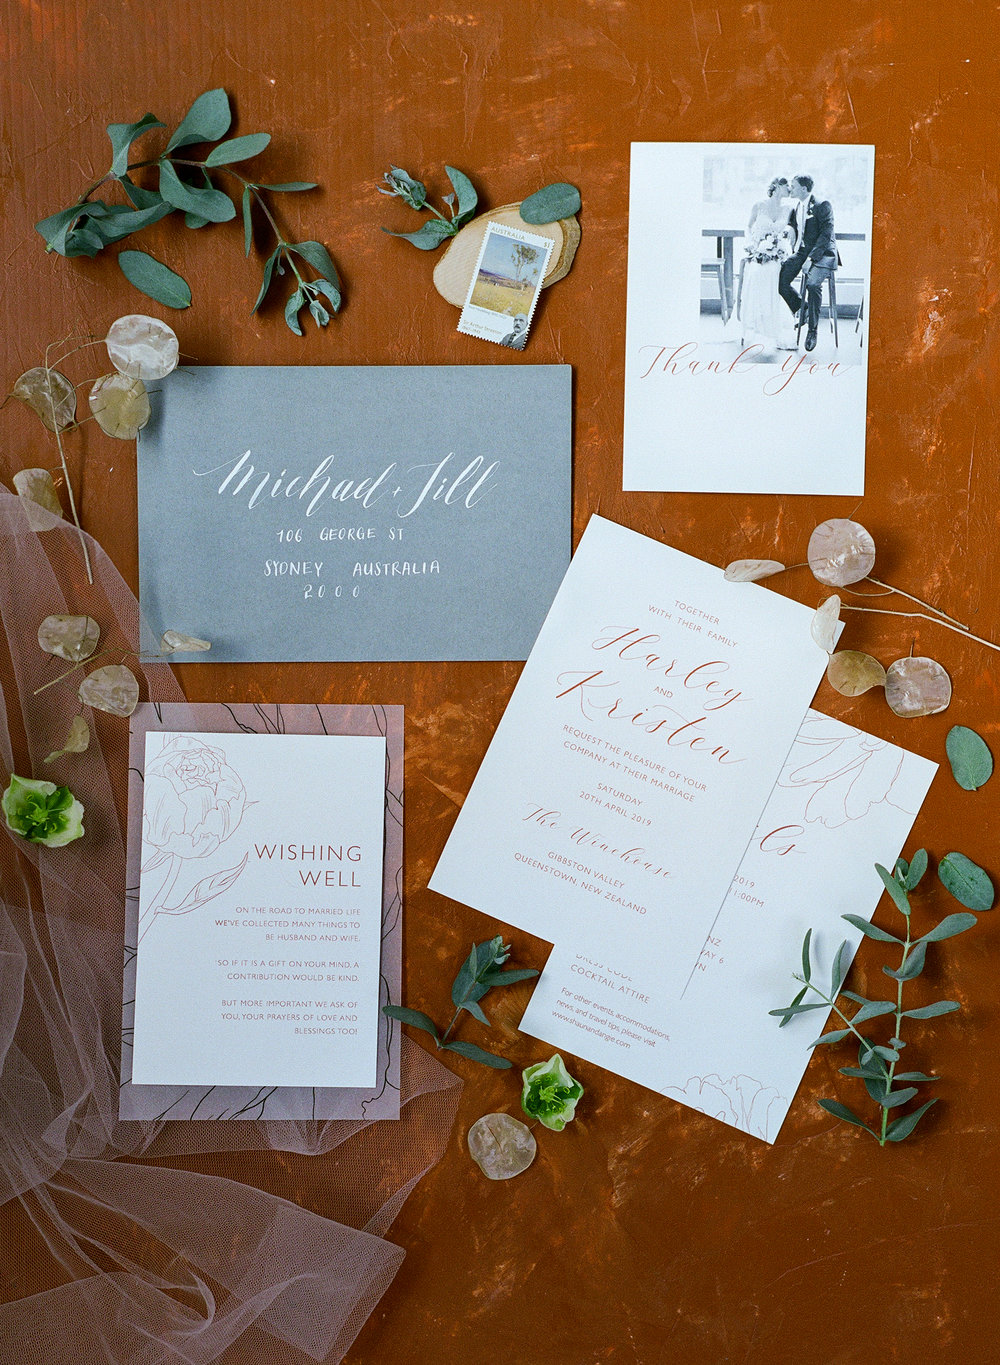 Warmth   Warmth is one of our favourite line illustration wedding suites. Simple yet elegant. You can pare them up with hand written calligraphy envelopes to bring the details to extreme! Wow your guests!